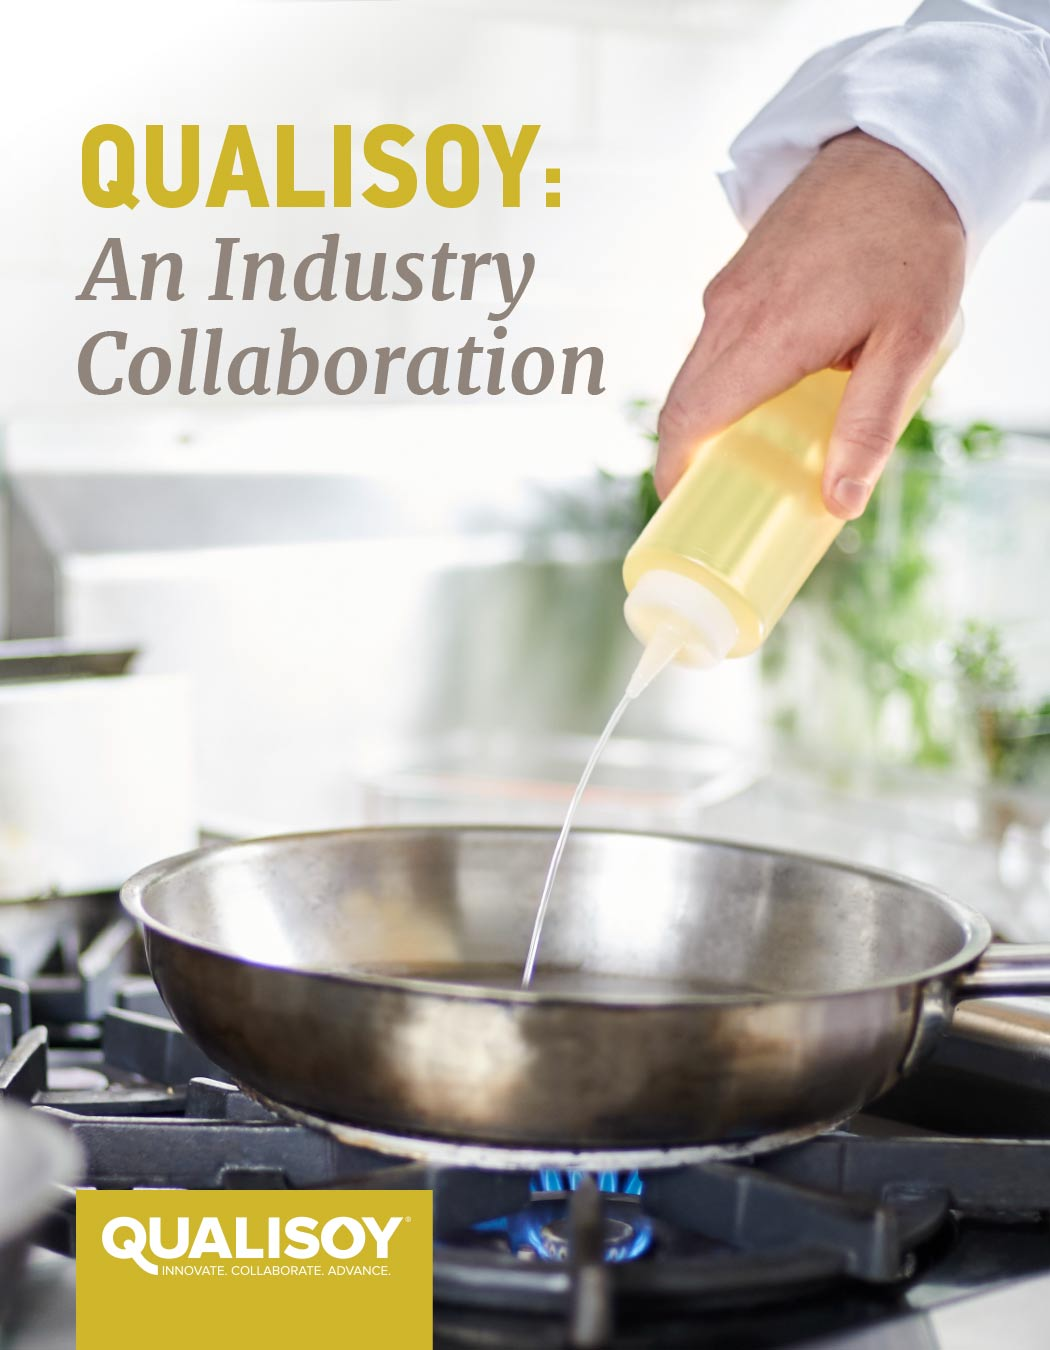 QUALISOY: Where Collaboration Meets Innovation